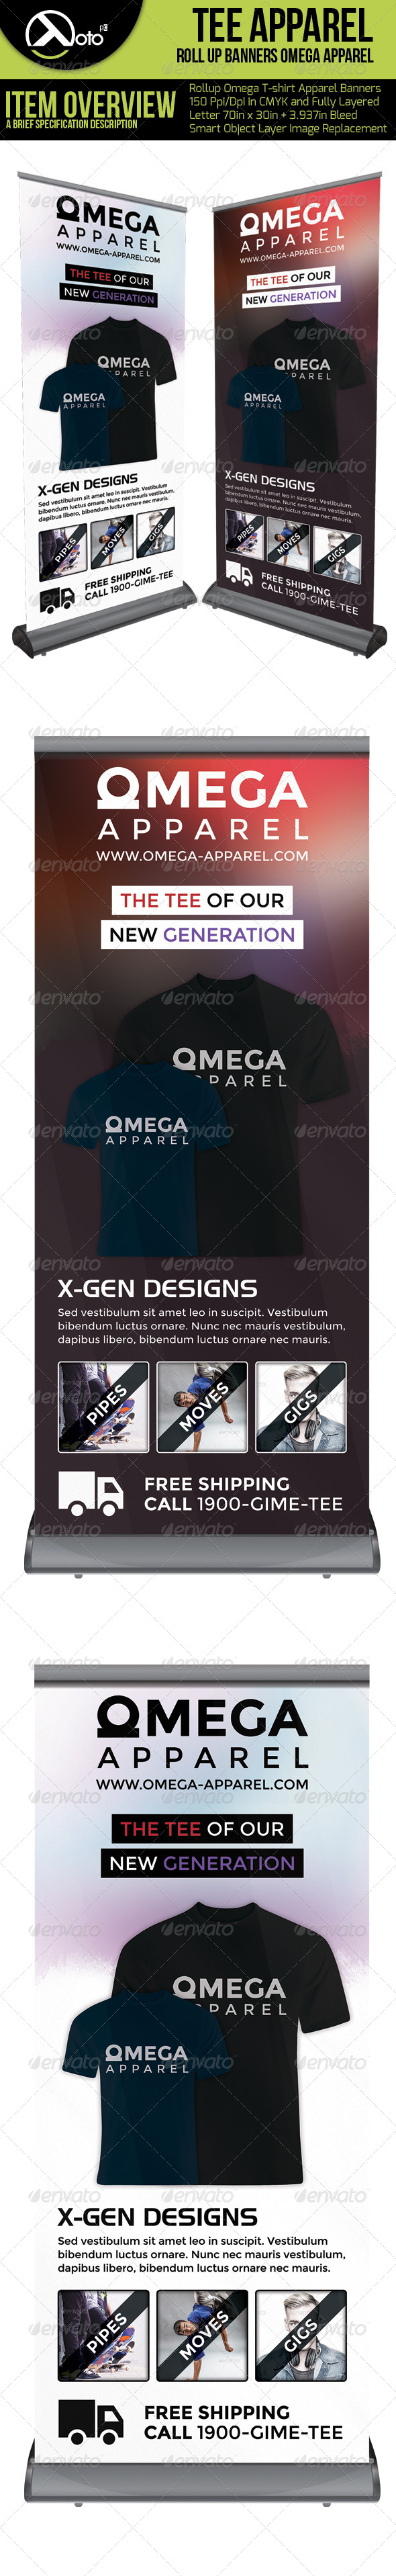 Omega Tee Apparel Roll Up Banners - Signage Print Templates